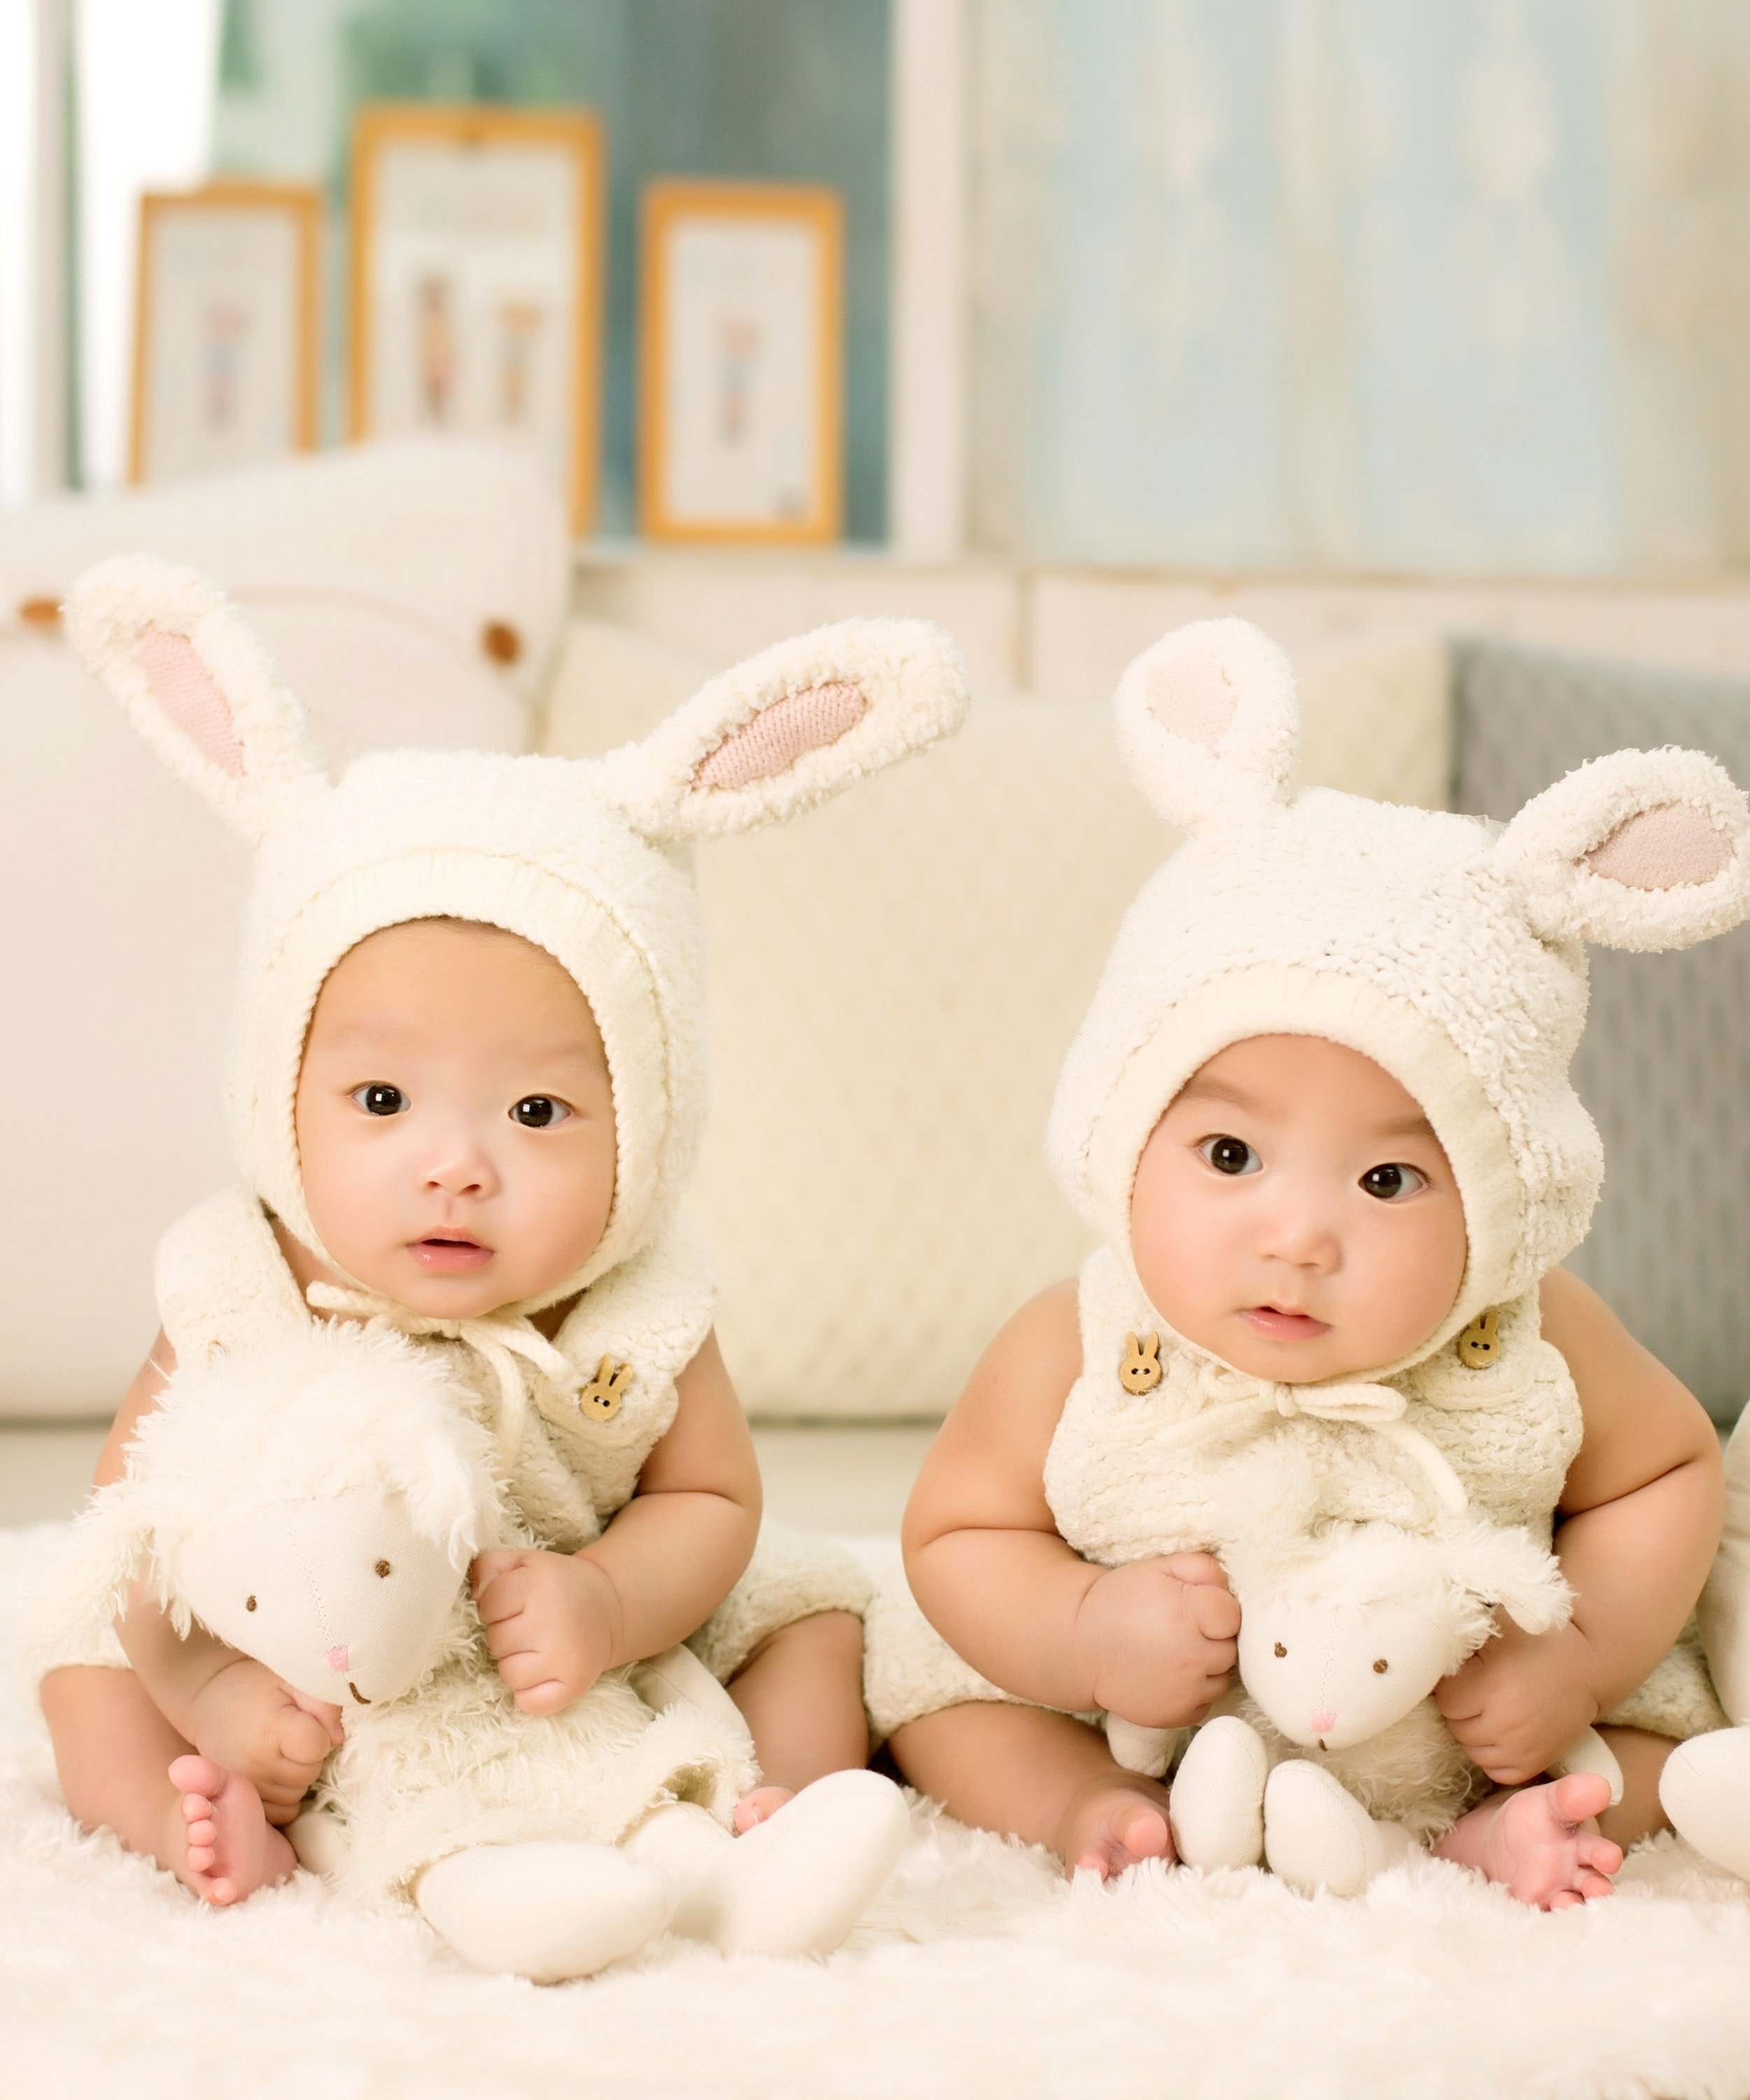 Adorable image of babies in cute bunny outfits | Photo: Pexels